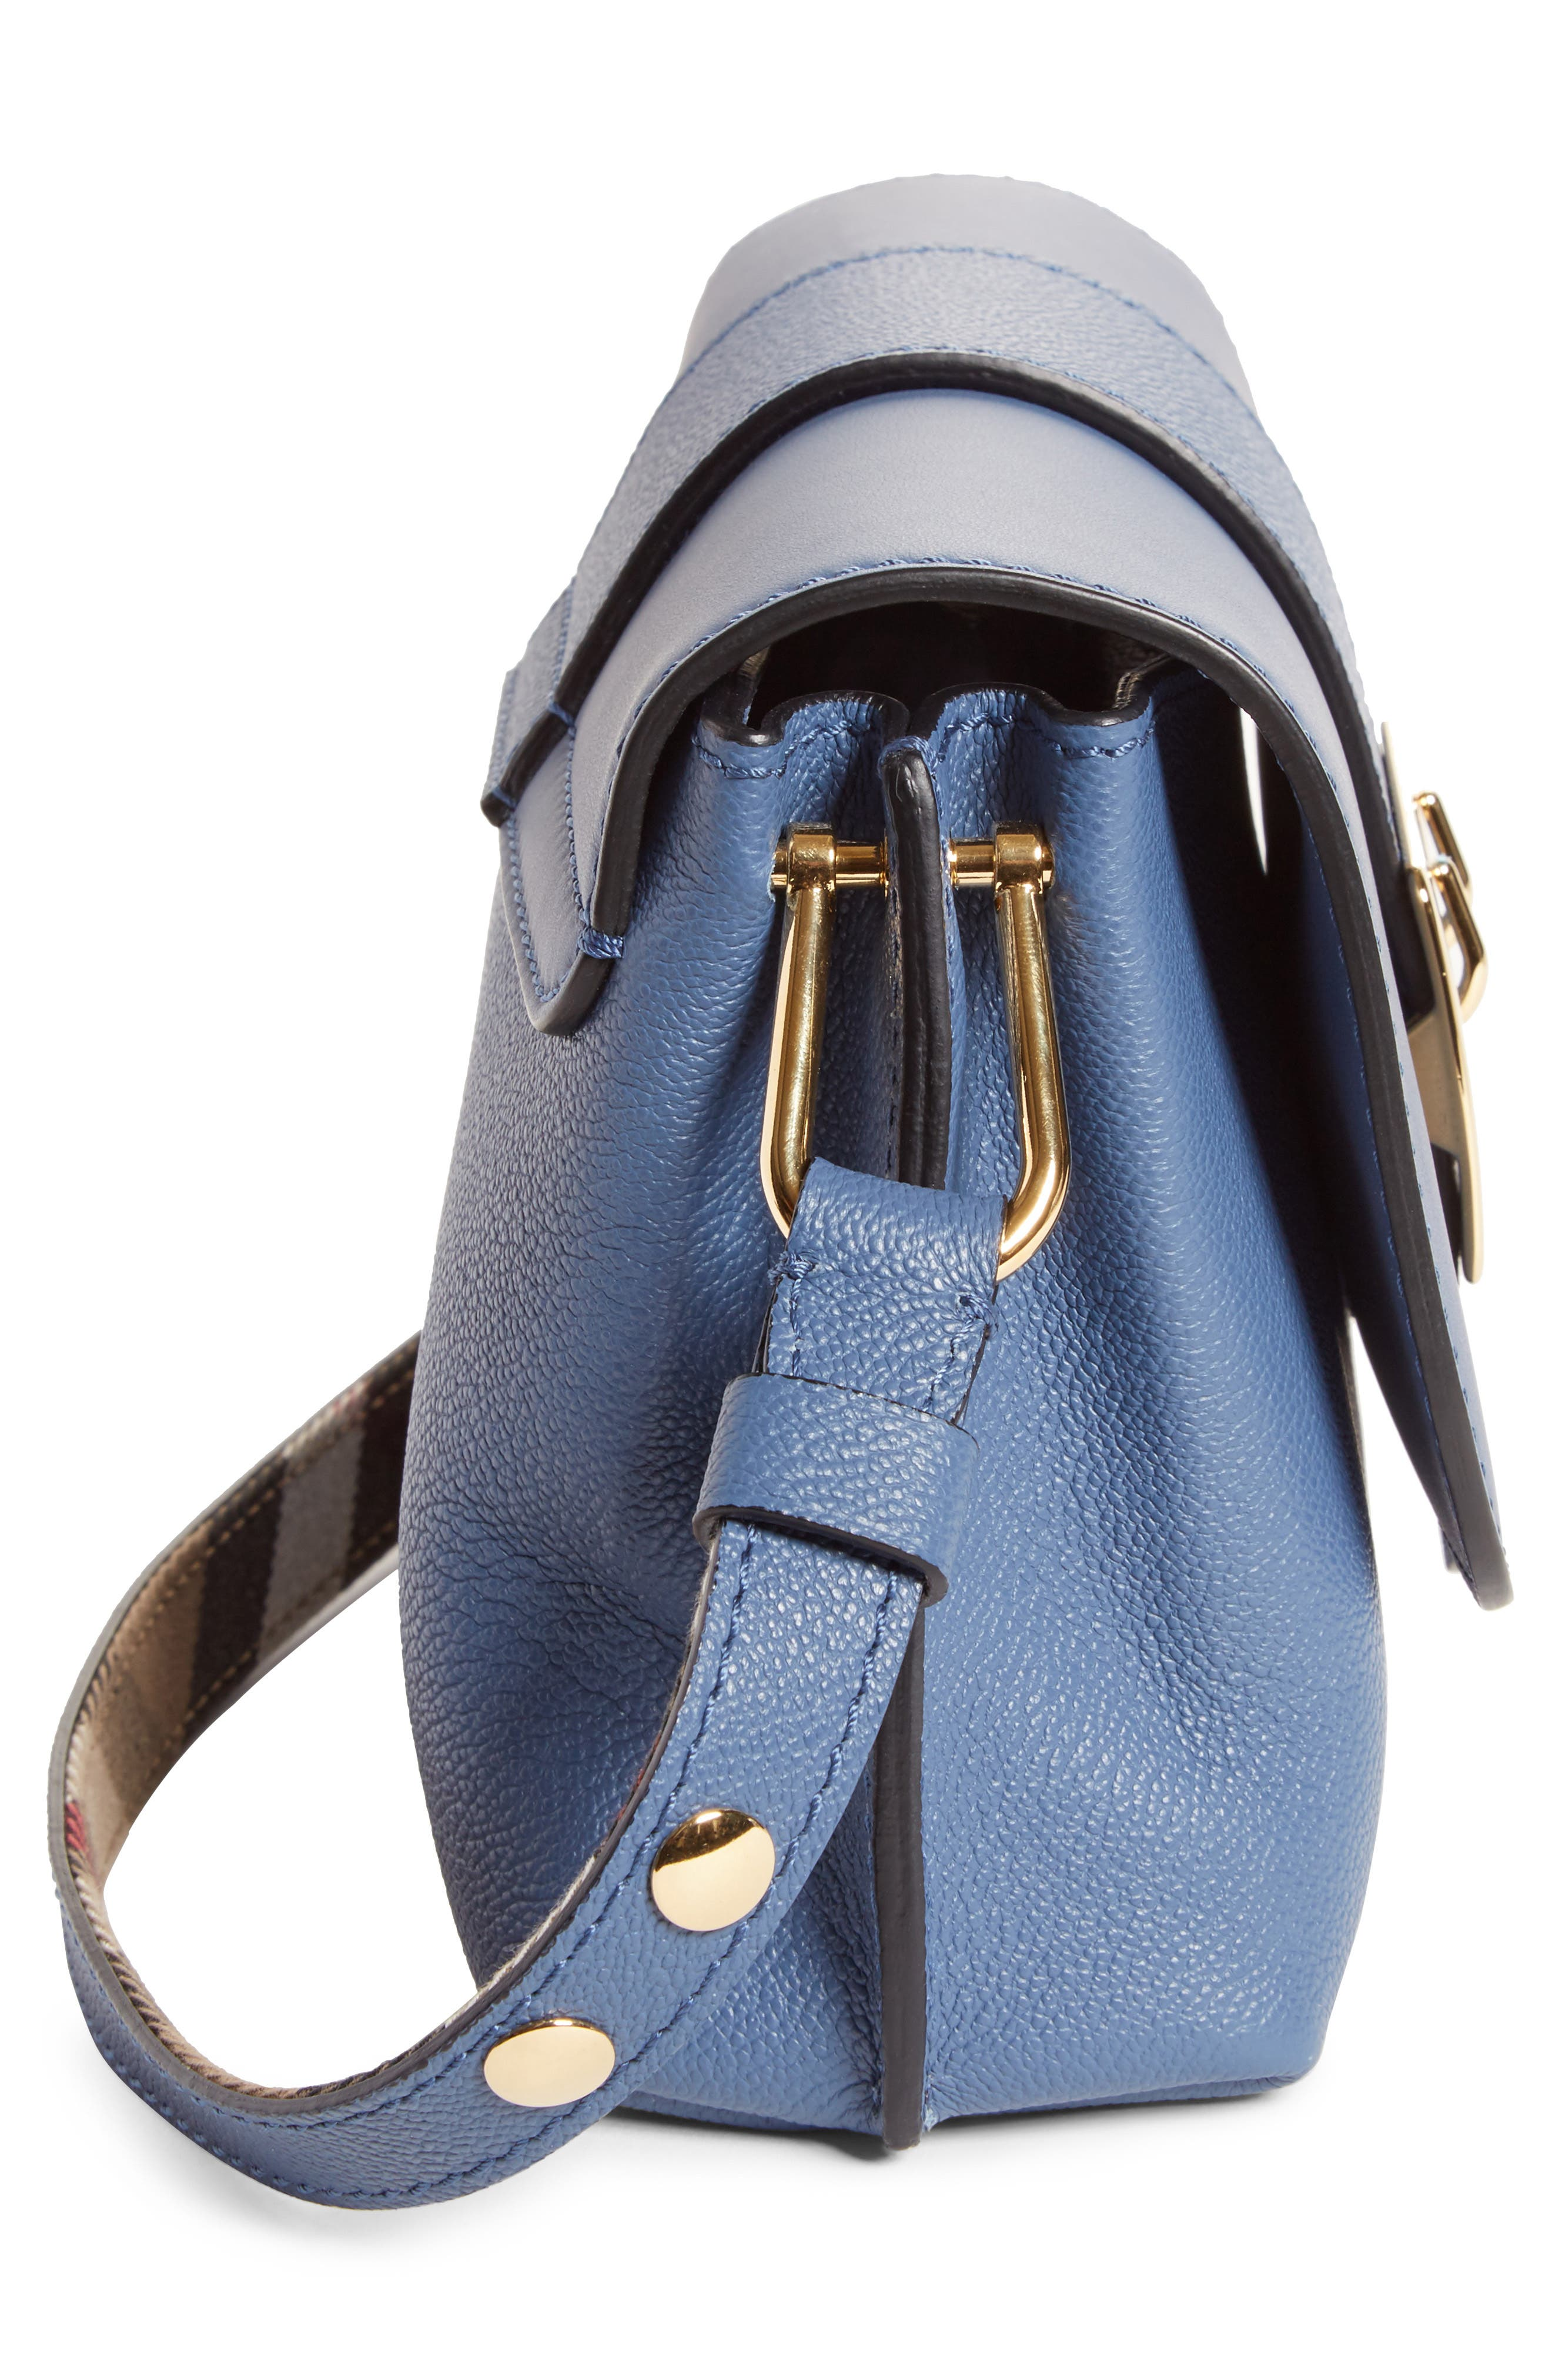 Small Buckle Leather Crossbody Bag,                             Alternate thumbnail 5, color,                             Slate Blue